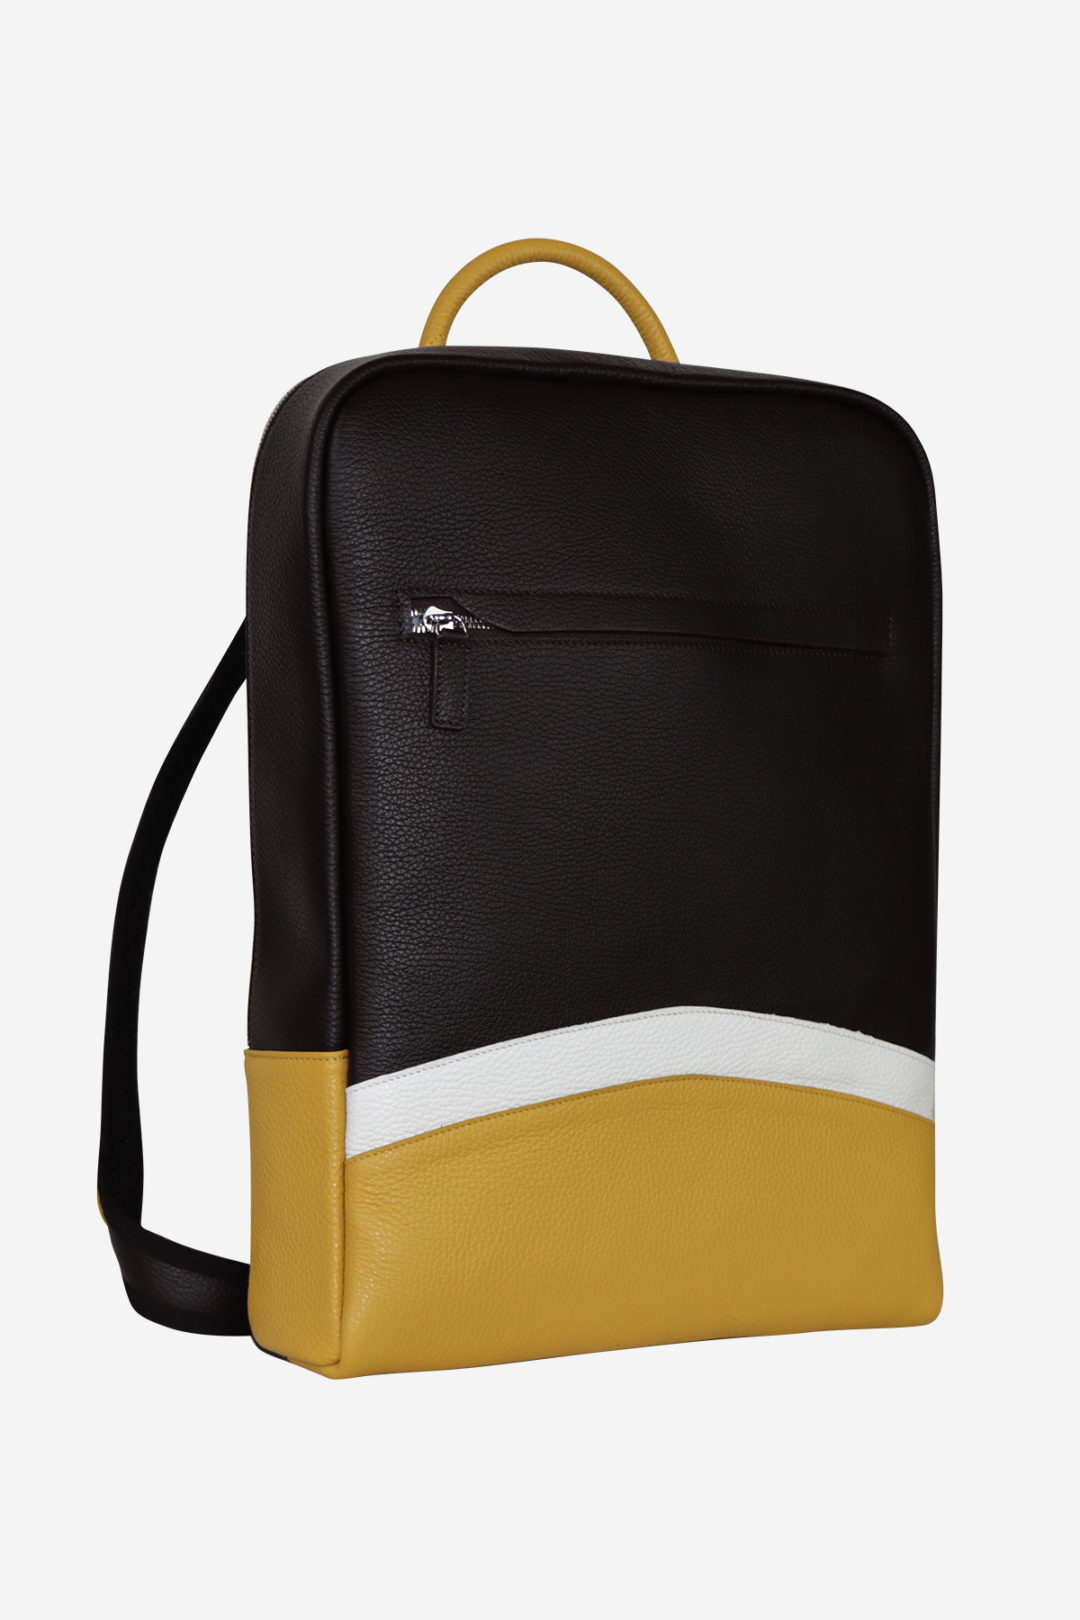 Sinuous Laptop Backpack yellow dark brown white waterproof leather